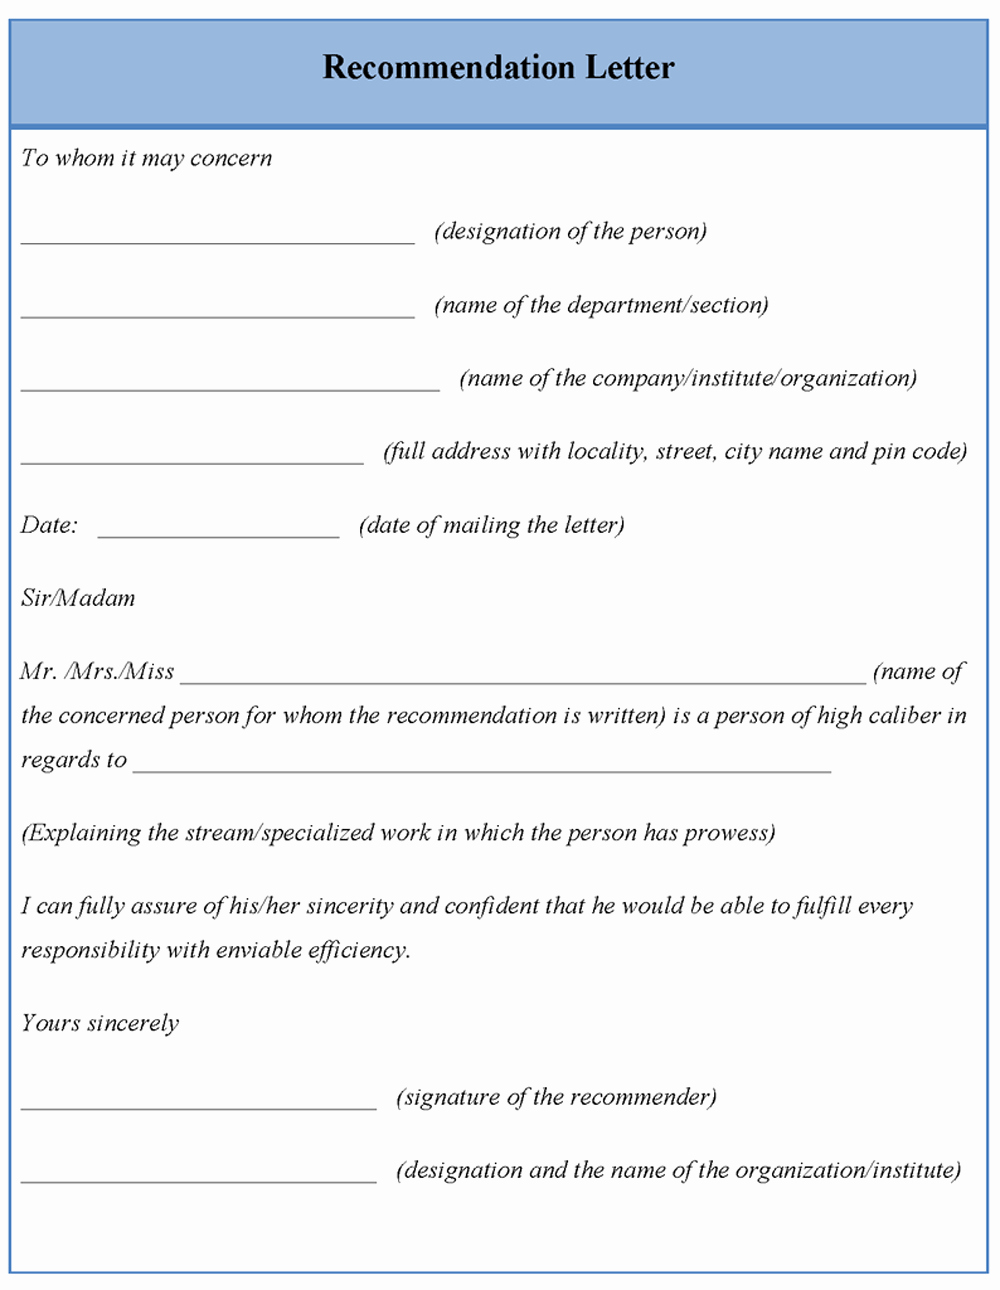 Format for Letters Of Recommendation Unique Template for Letter Re Mendation